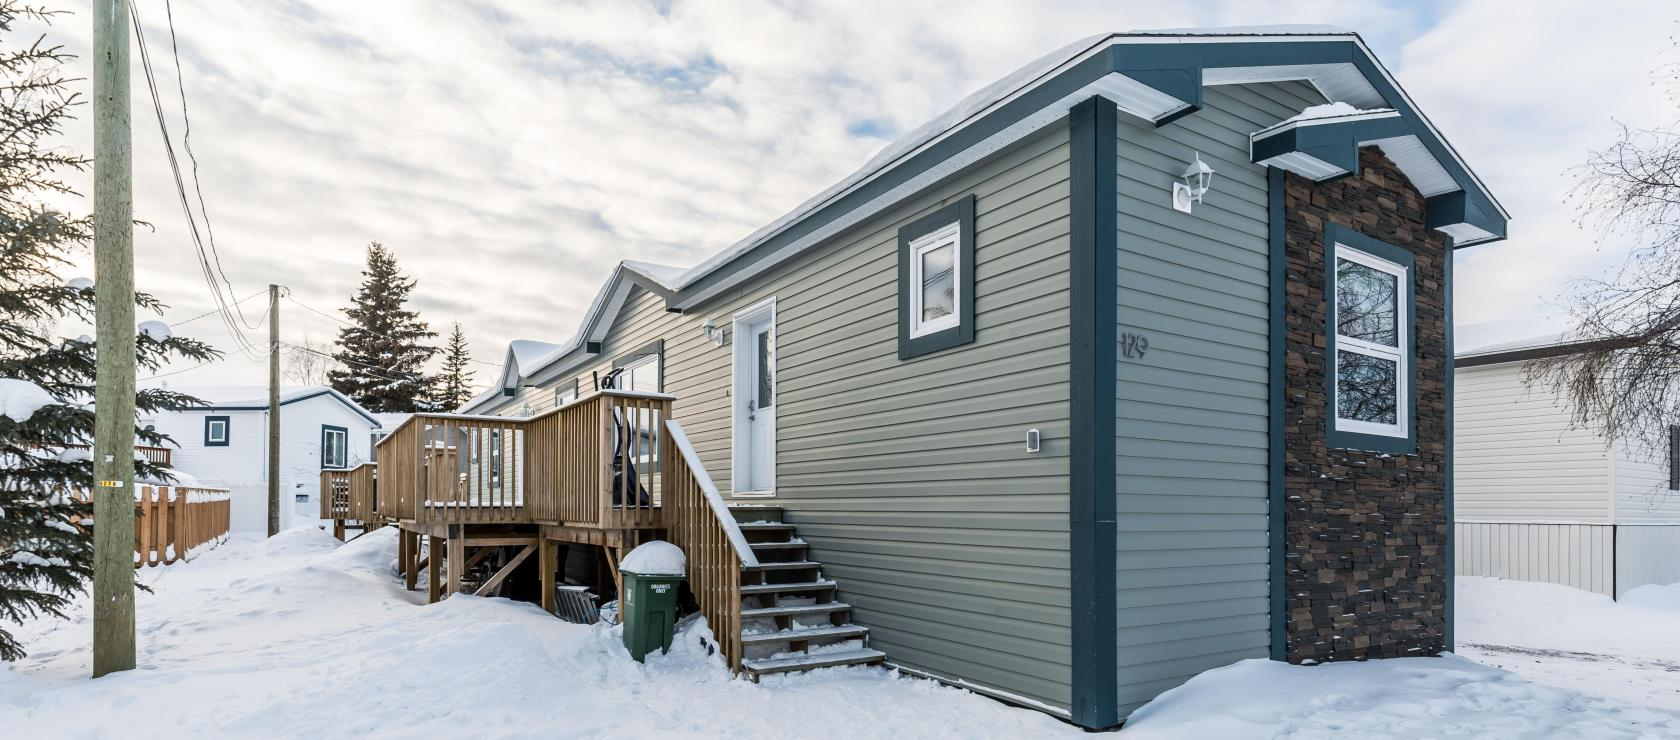 129 Con Road, Con Road, Yellowknife 2